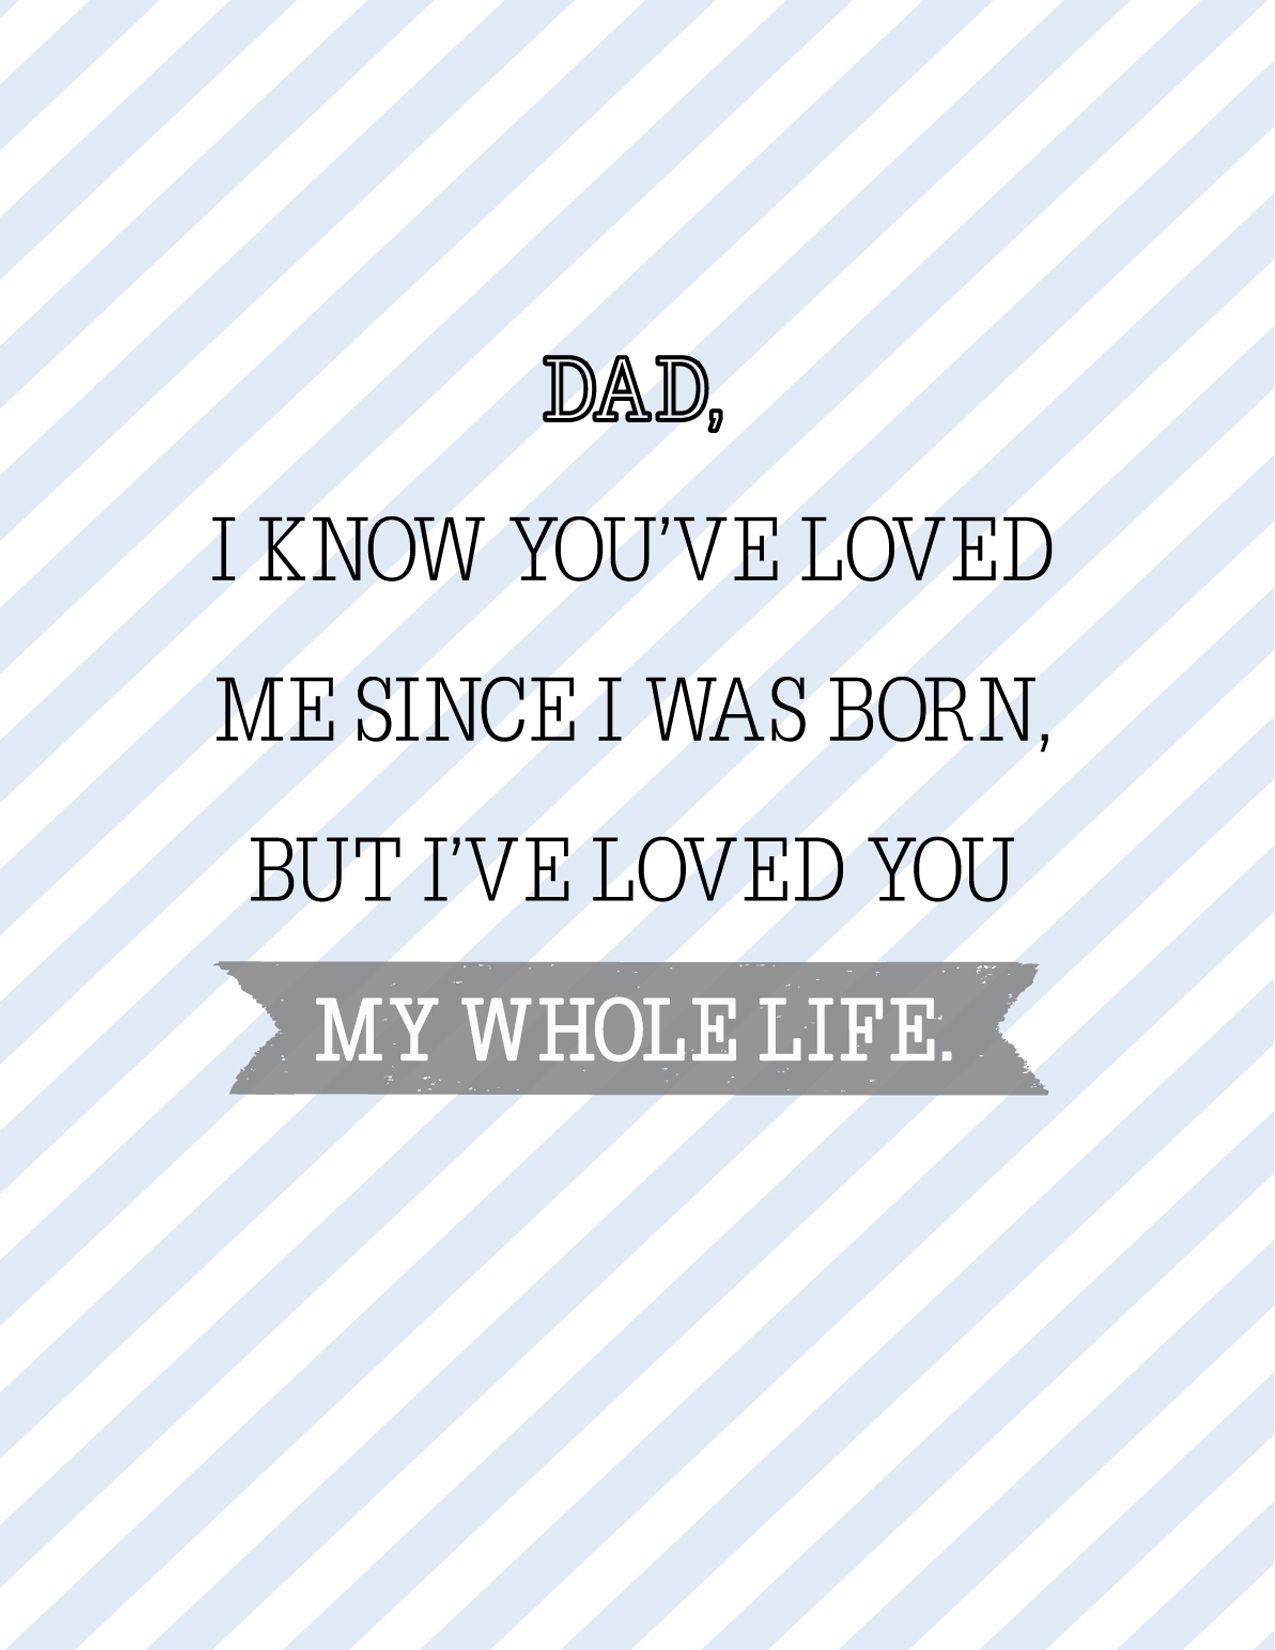 15 Free Printable Father's Day Cards - Cute Online Father's Day - Hallmark Free Printable Fathers Day Cards